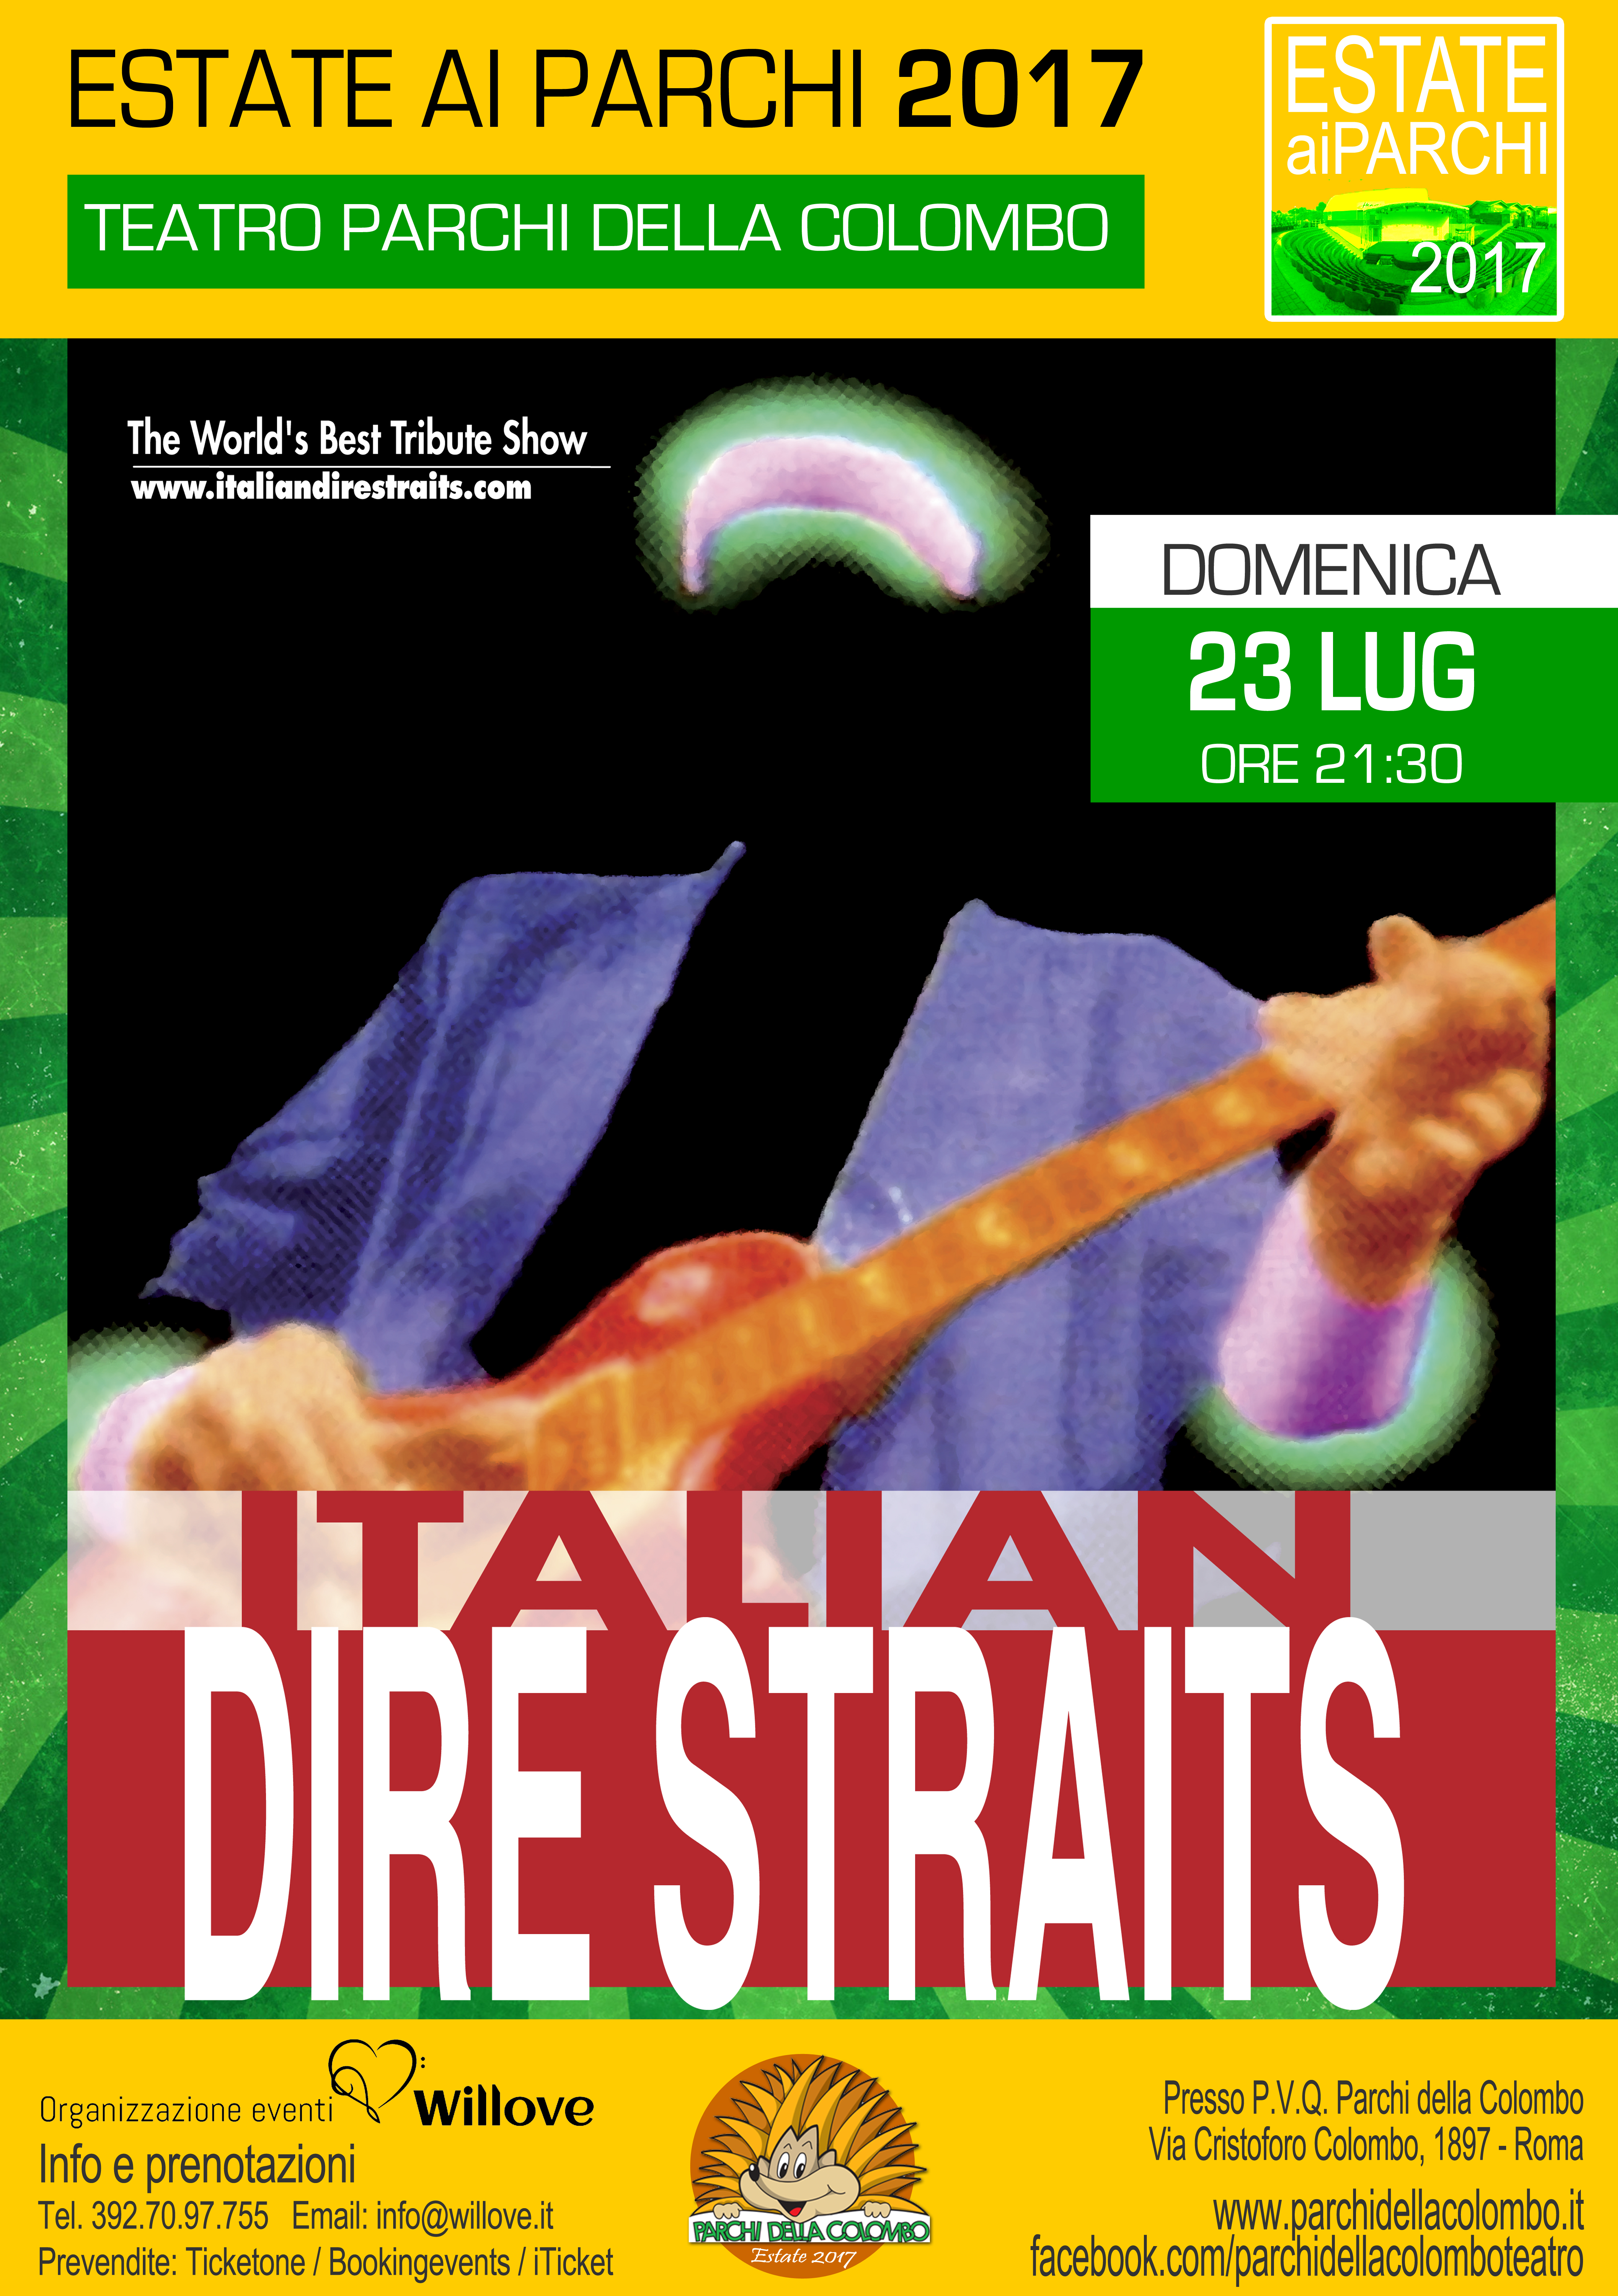 ESTATE AI PARCHI 2017 DIRESTRAITS